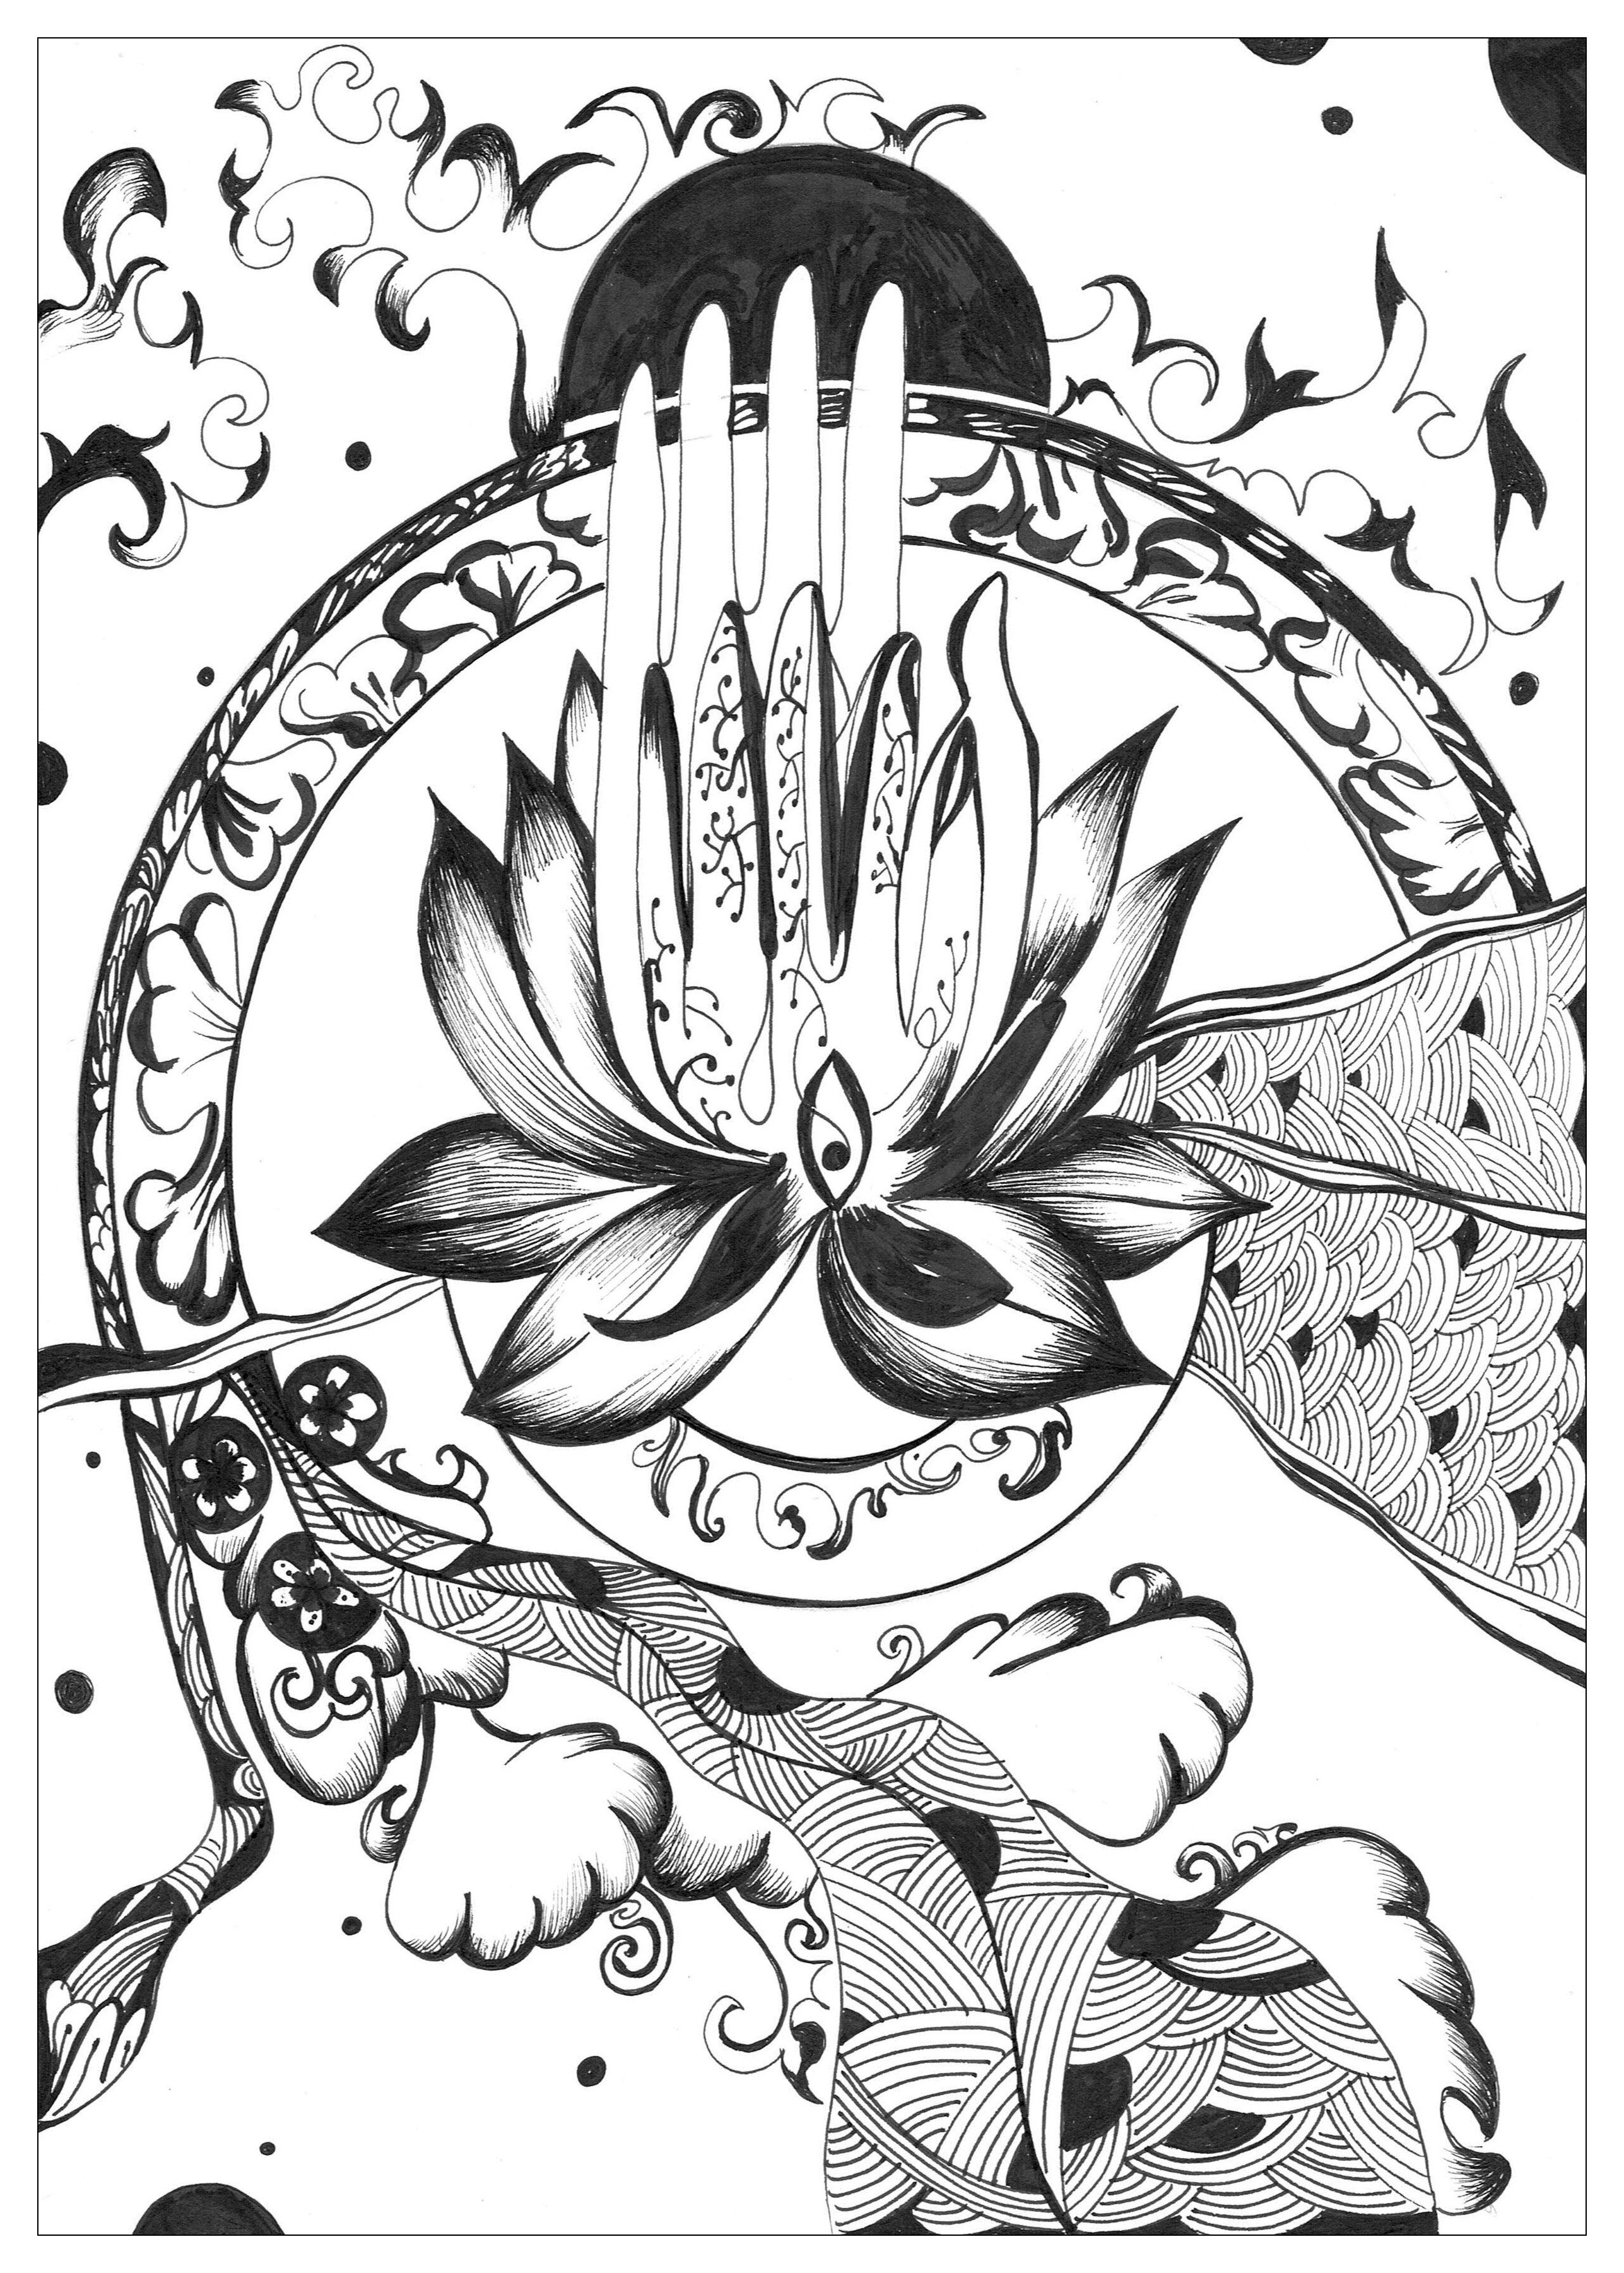 Discover 3 new incredible coloring pages created by our partner ...